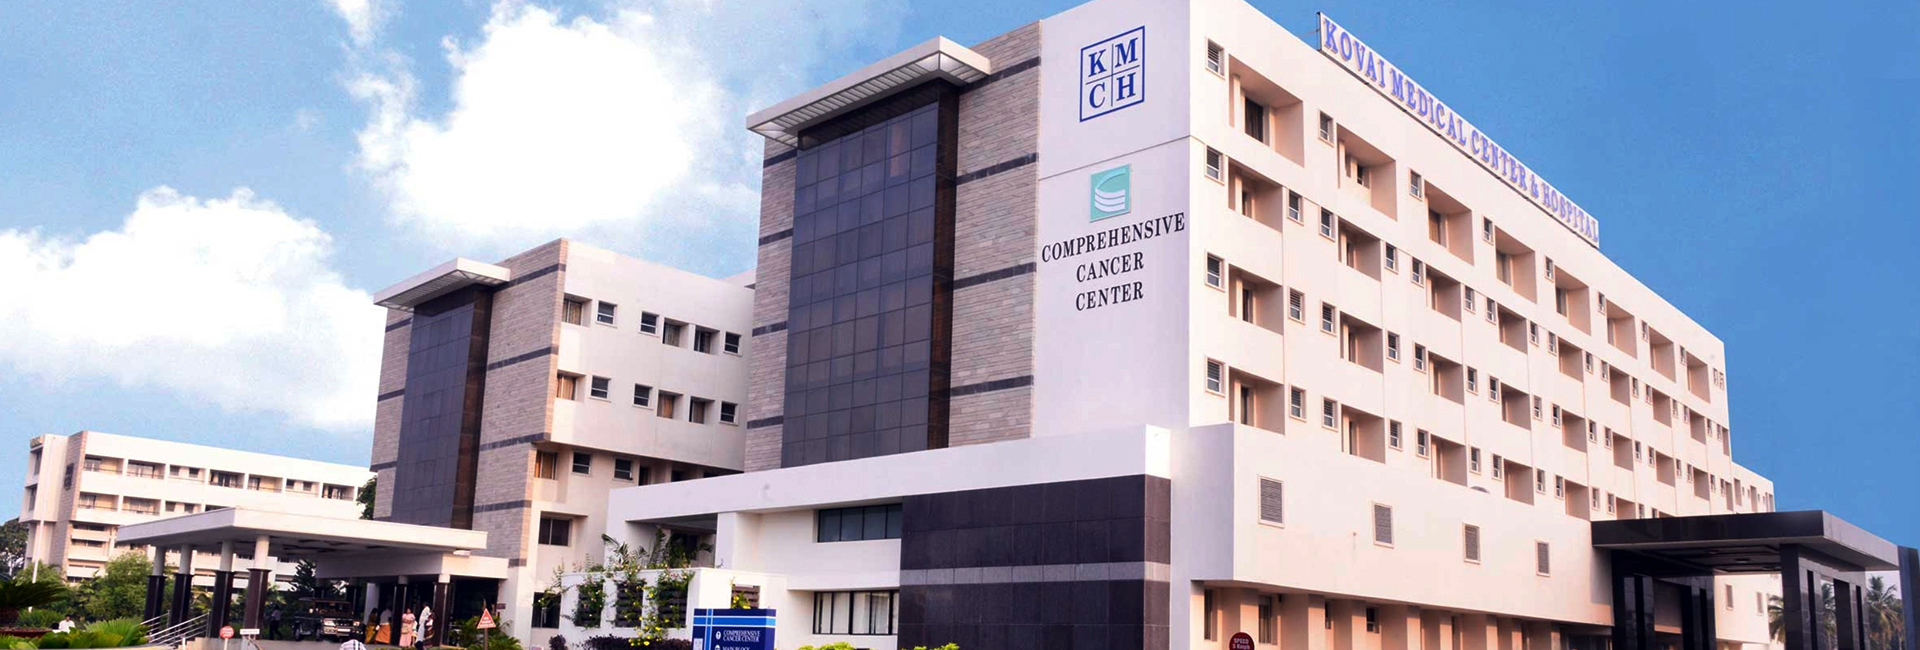 KMCH Institute of Health Sciences and Research, Coimbatore